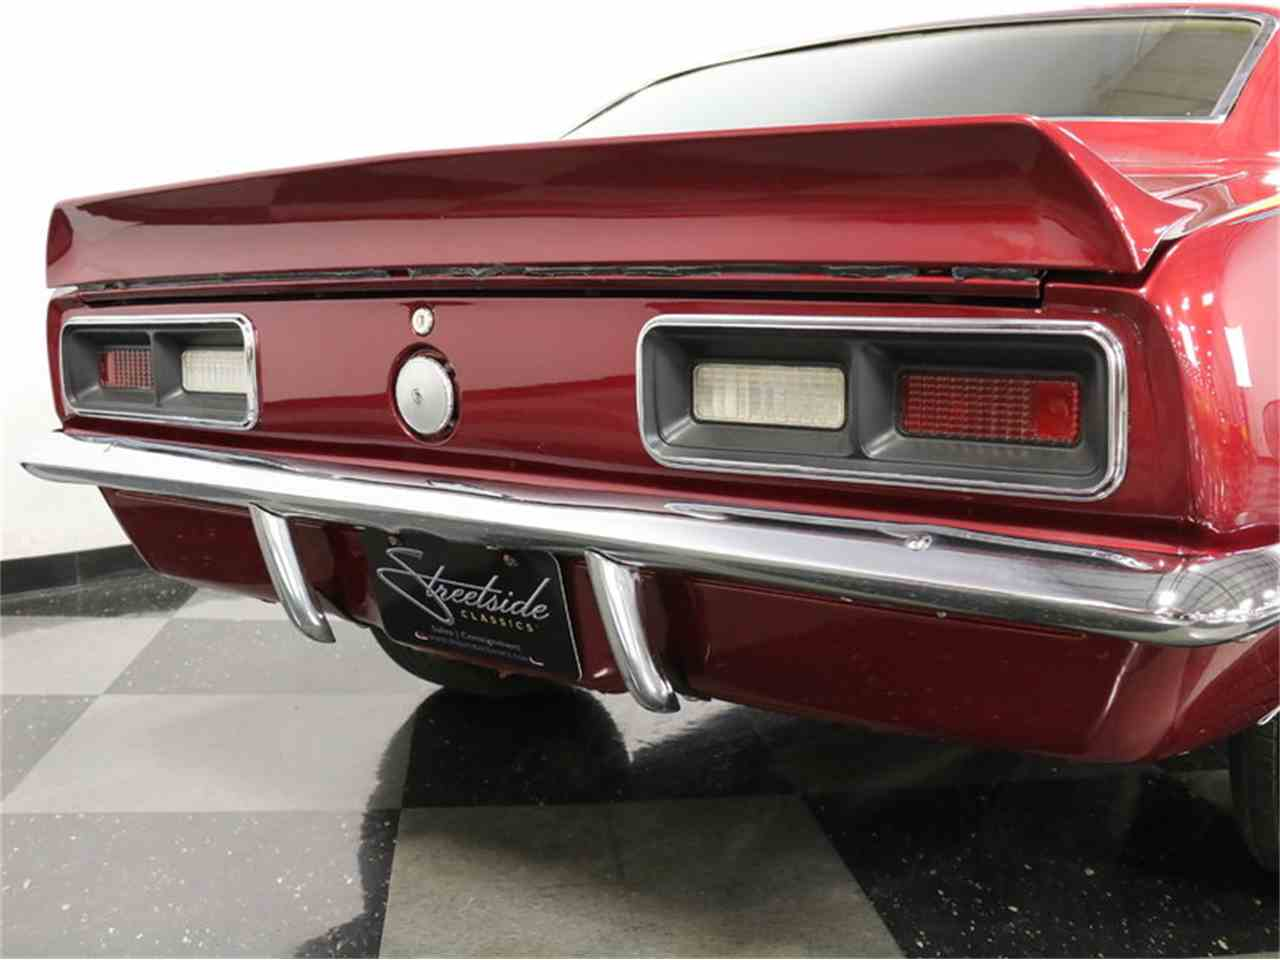 Large Picture of 1968 Chevrolet Camaro SS located in Texas - $29,995.00 Offered by Streetside Classics - Dallas / Fort Worth - LSS3